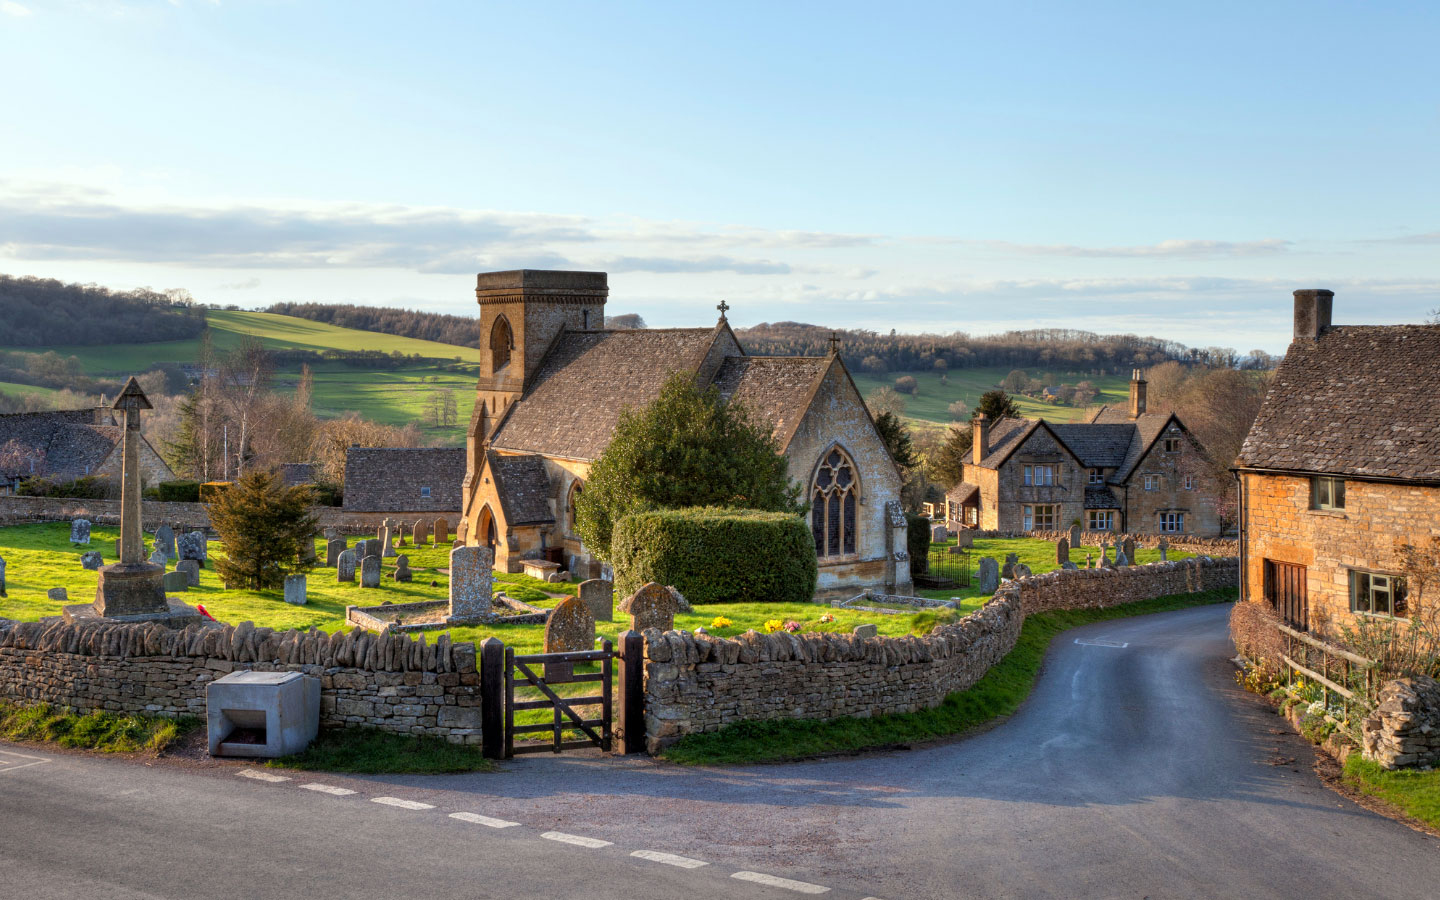 The village of Snowshill in the Cotswolds